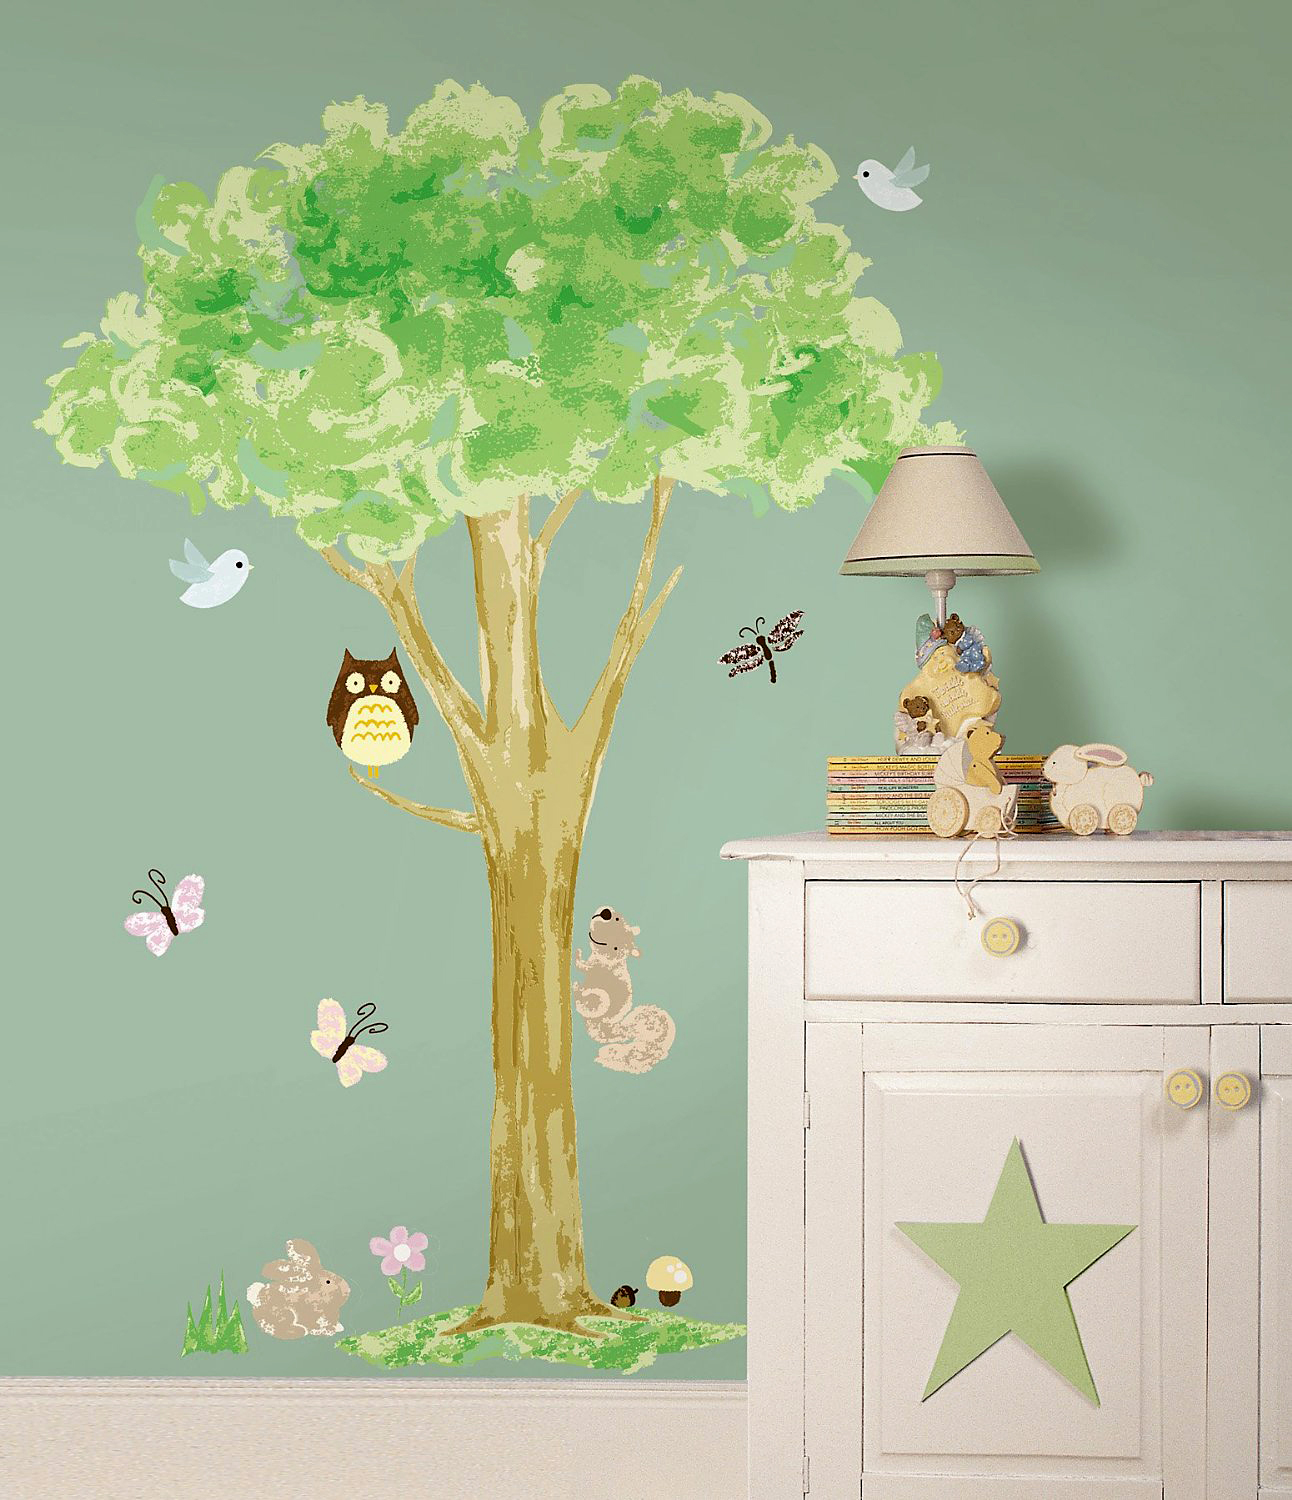 wandsticker wandtattoo wandbild eule auf baum wandsticker. Black Bedroom Furniture Sets. Home Design Ideas